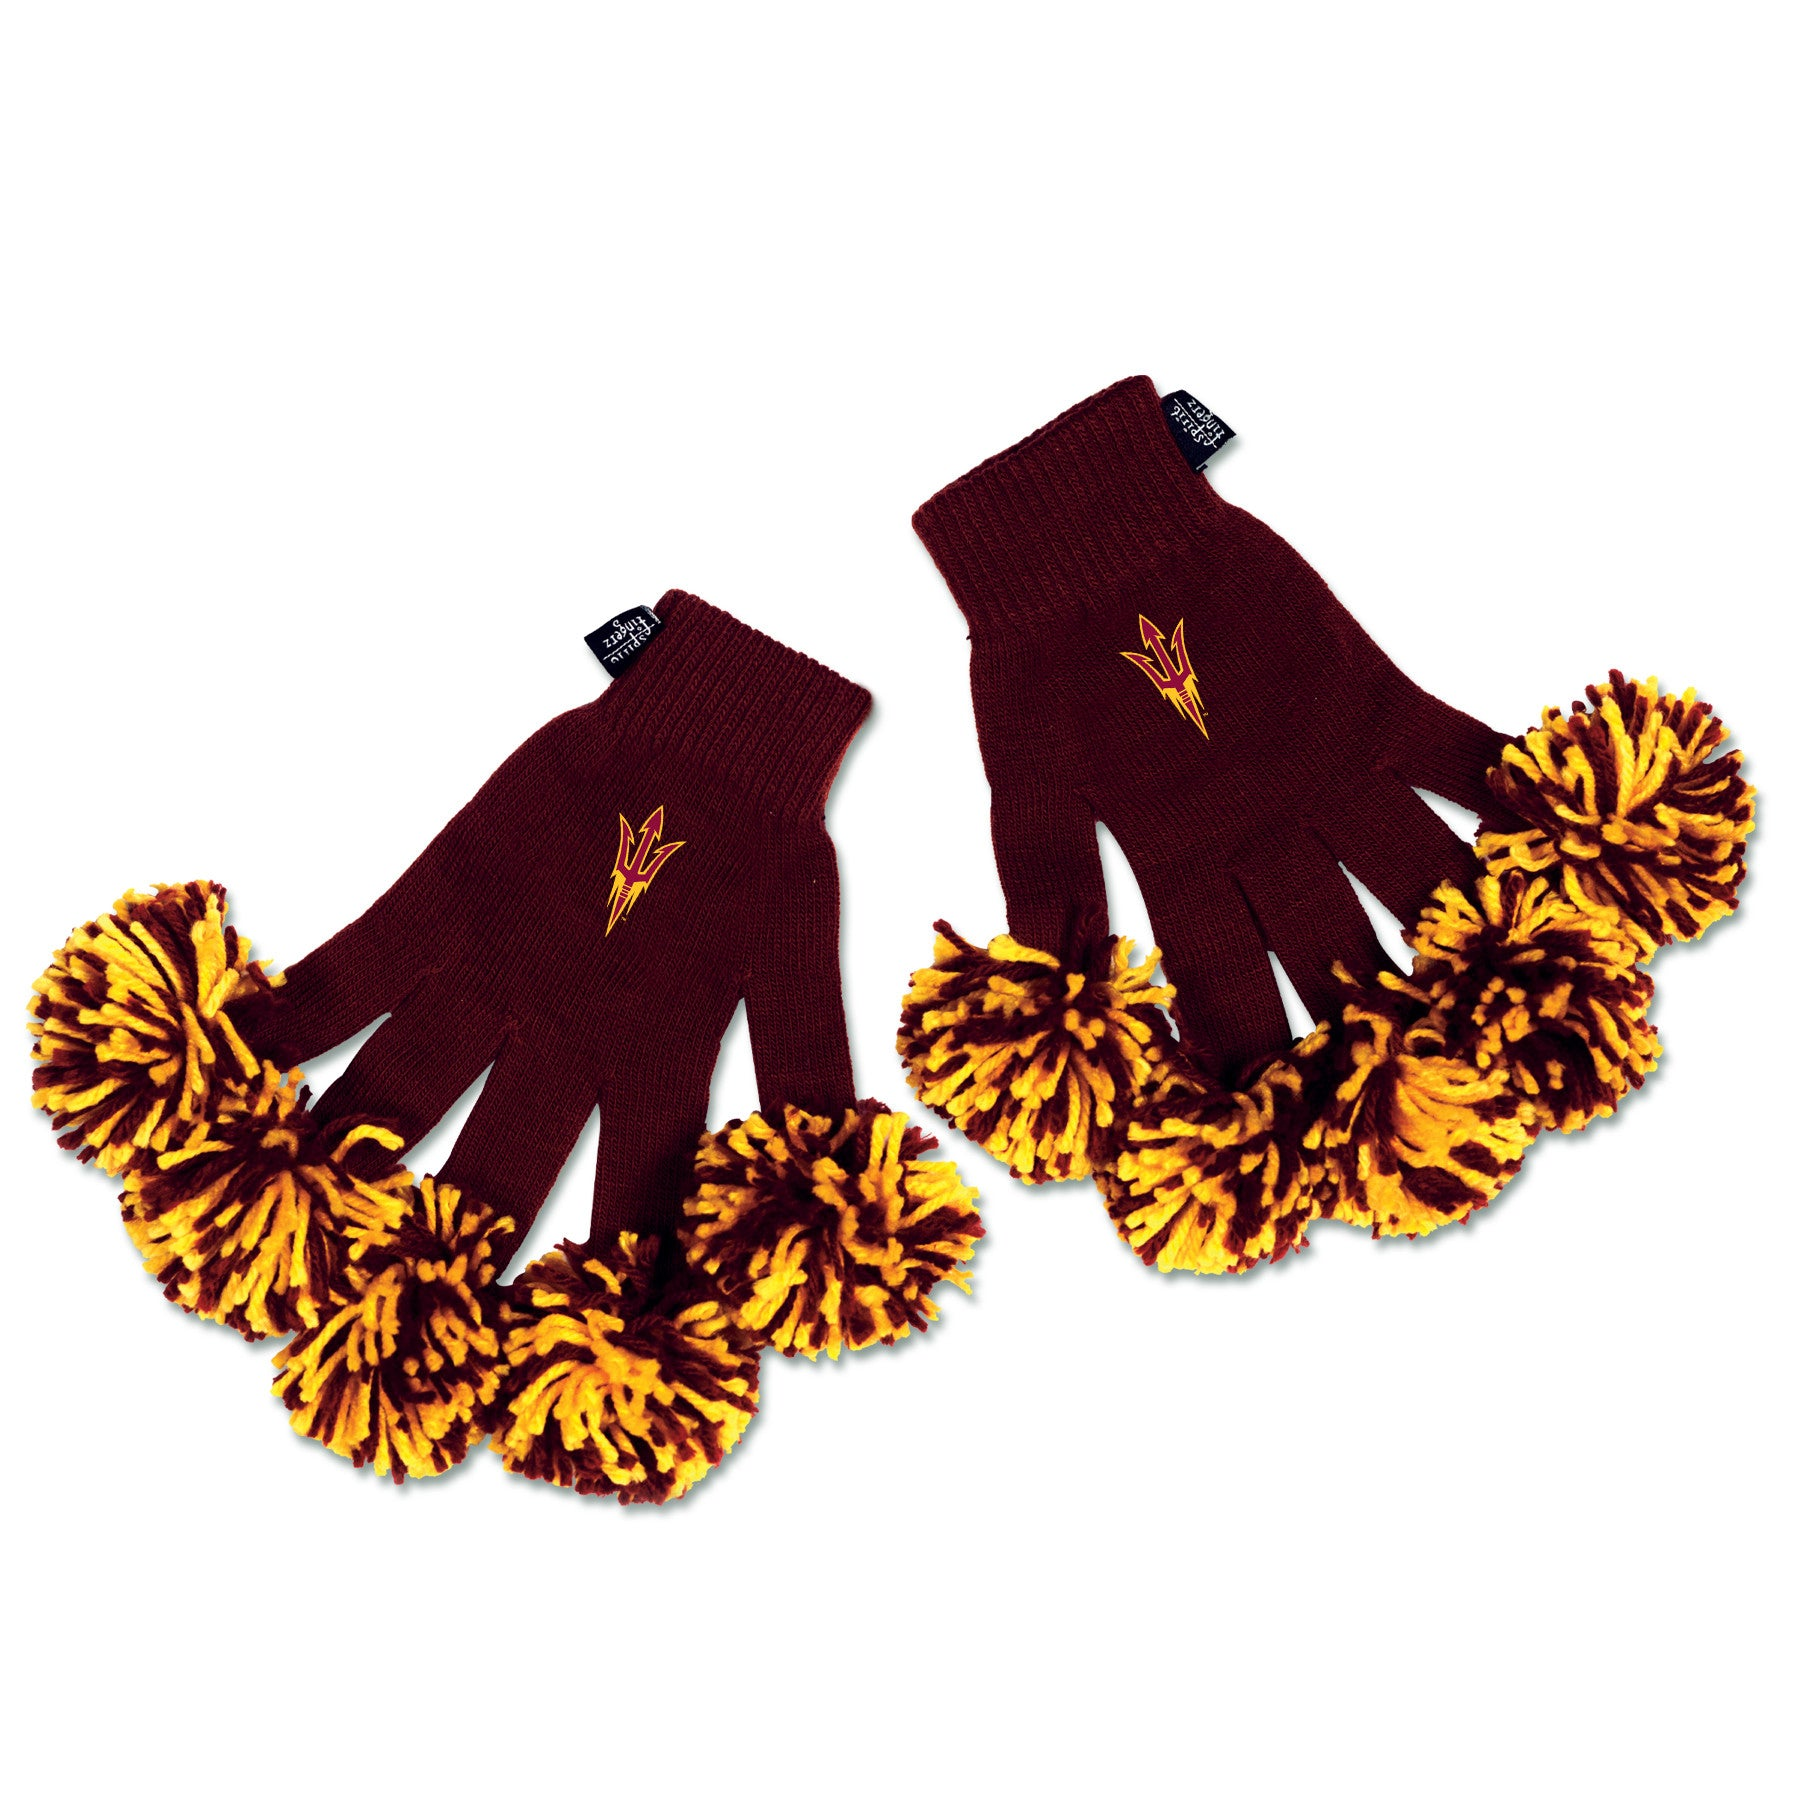 Arizona State Sundevils NCAA Spirit Fingerz Cheerleading Pom-Pom Gloves